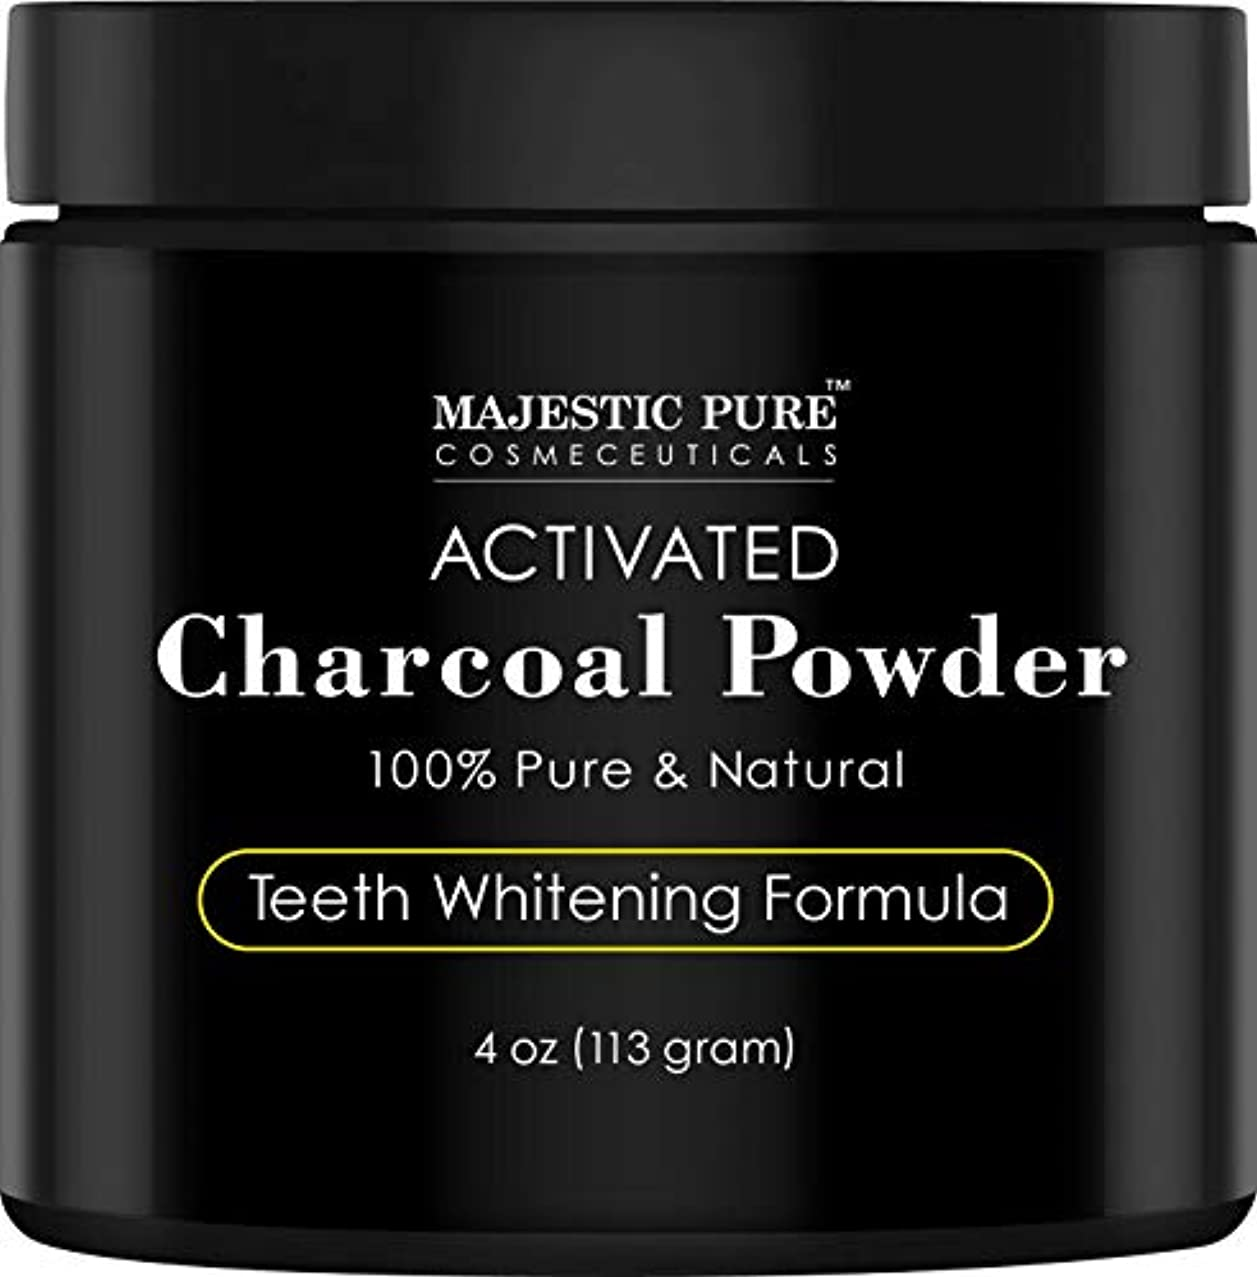 Majestic Pure Teeth Whitening Activated Charcoal Powder - Natural  歯のホワイトニング ココナッツ チャコールパウダー4 oz (113g)